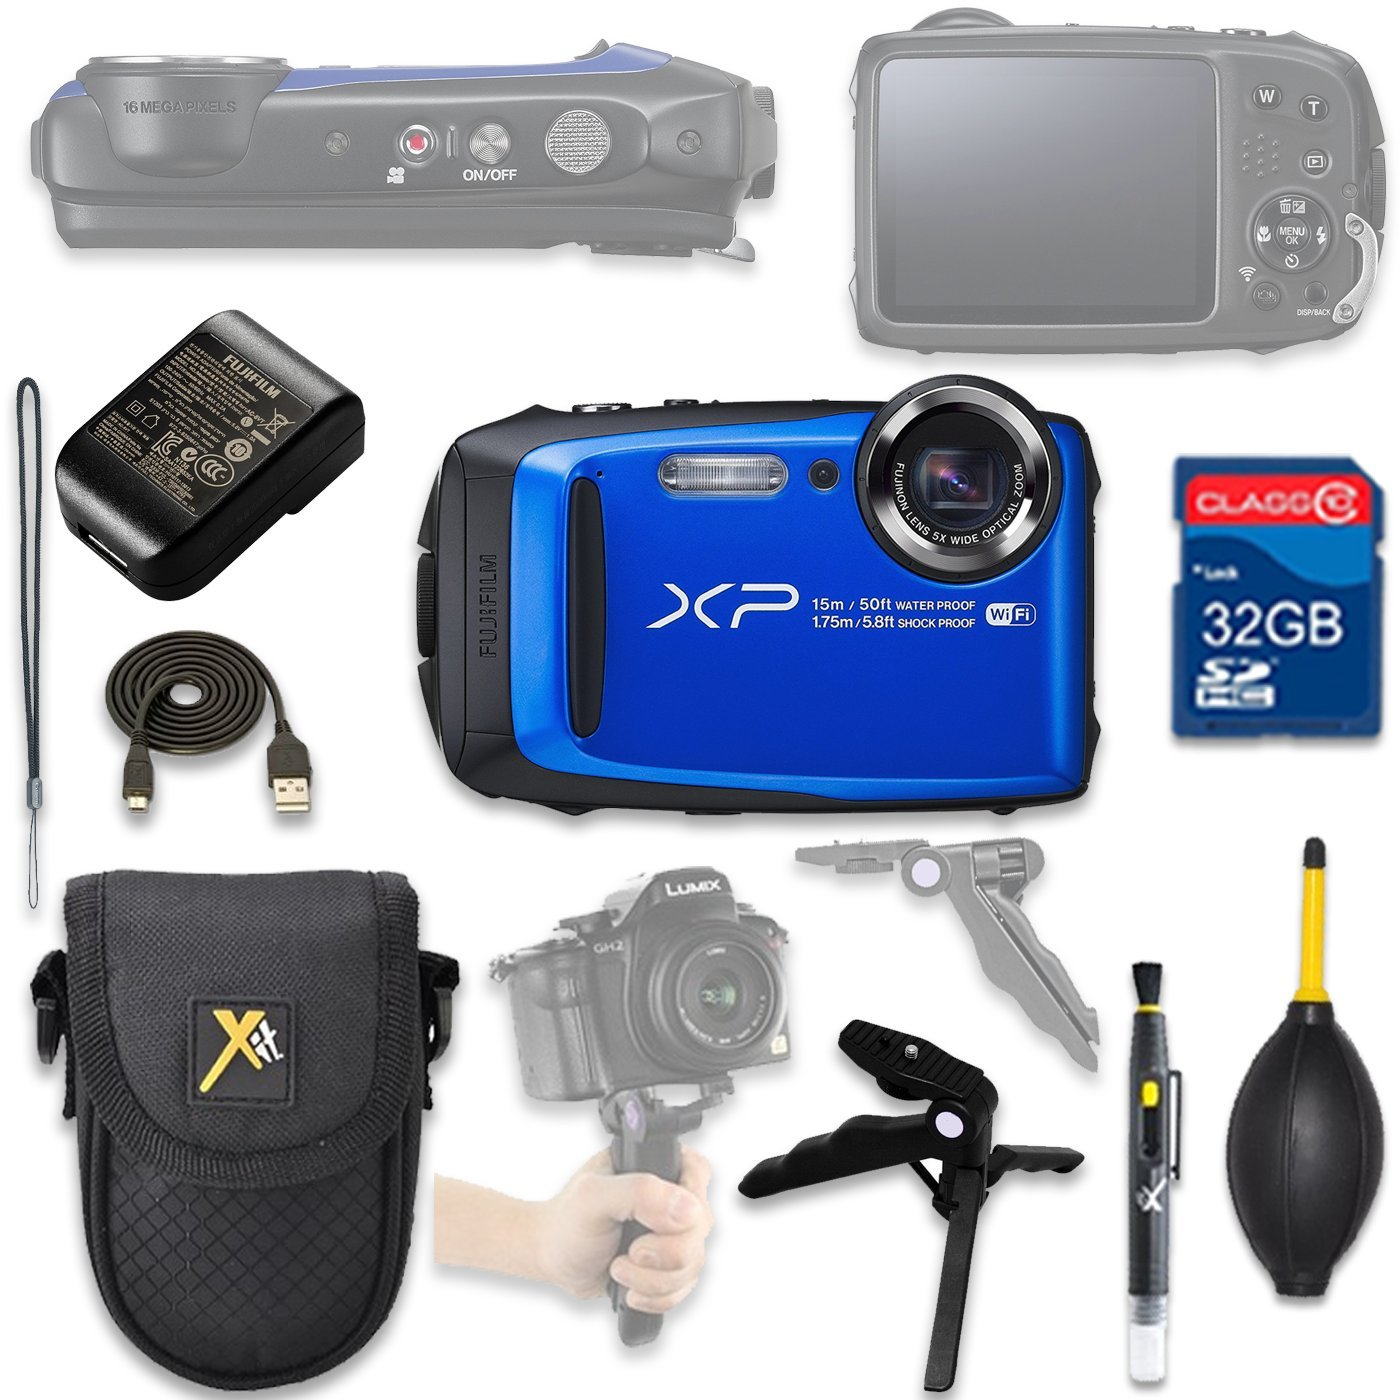 Fujifilm FinePix XP90 Digital Camera (blue) with 32GB SD Memory Card + Accessory Bundle by ALS VARIETY